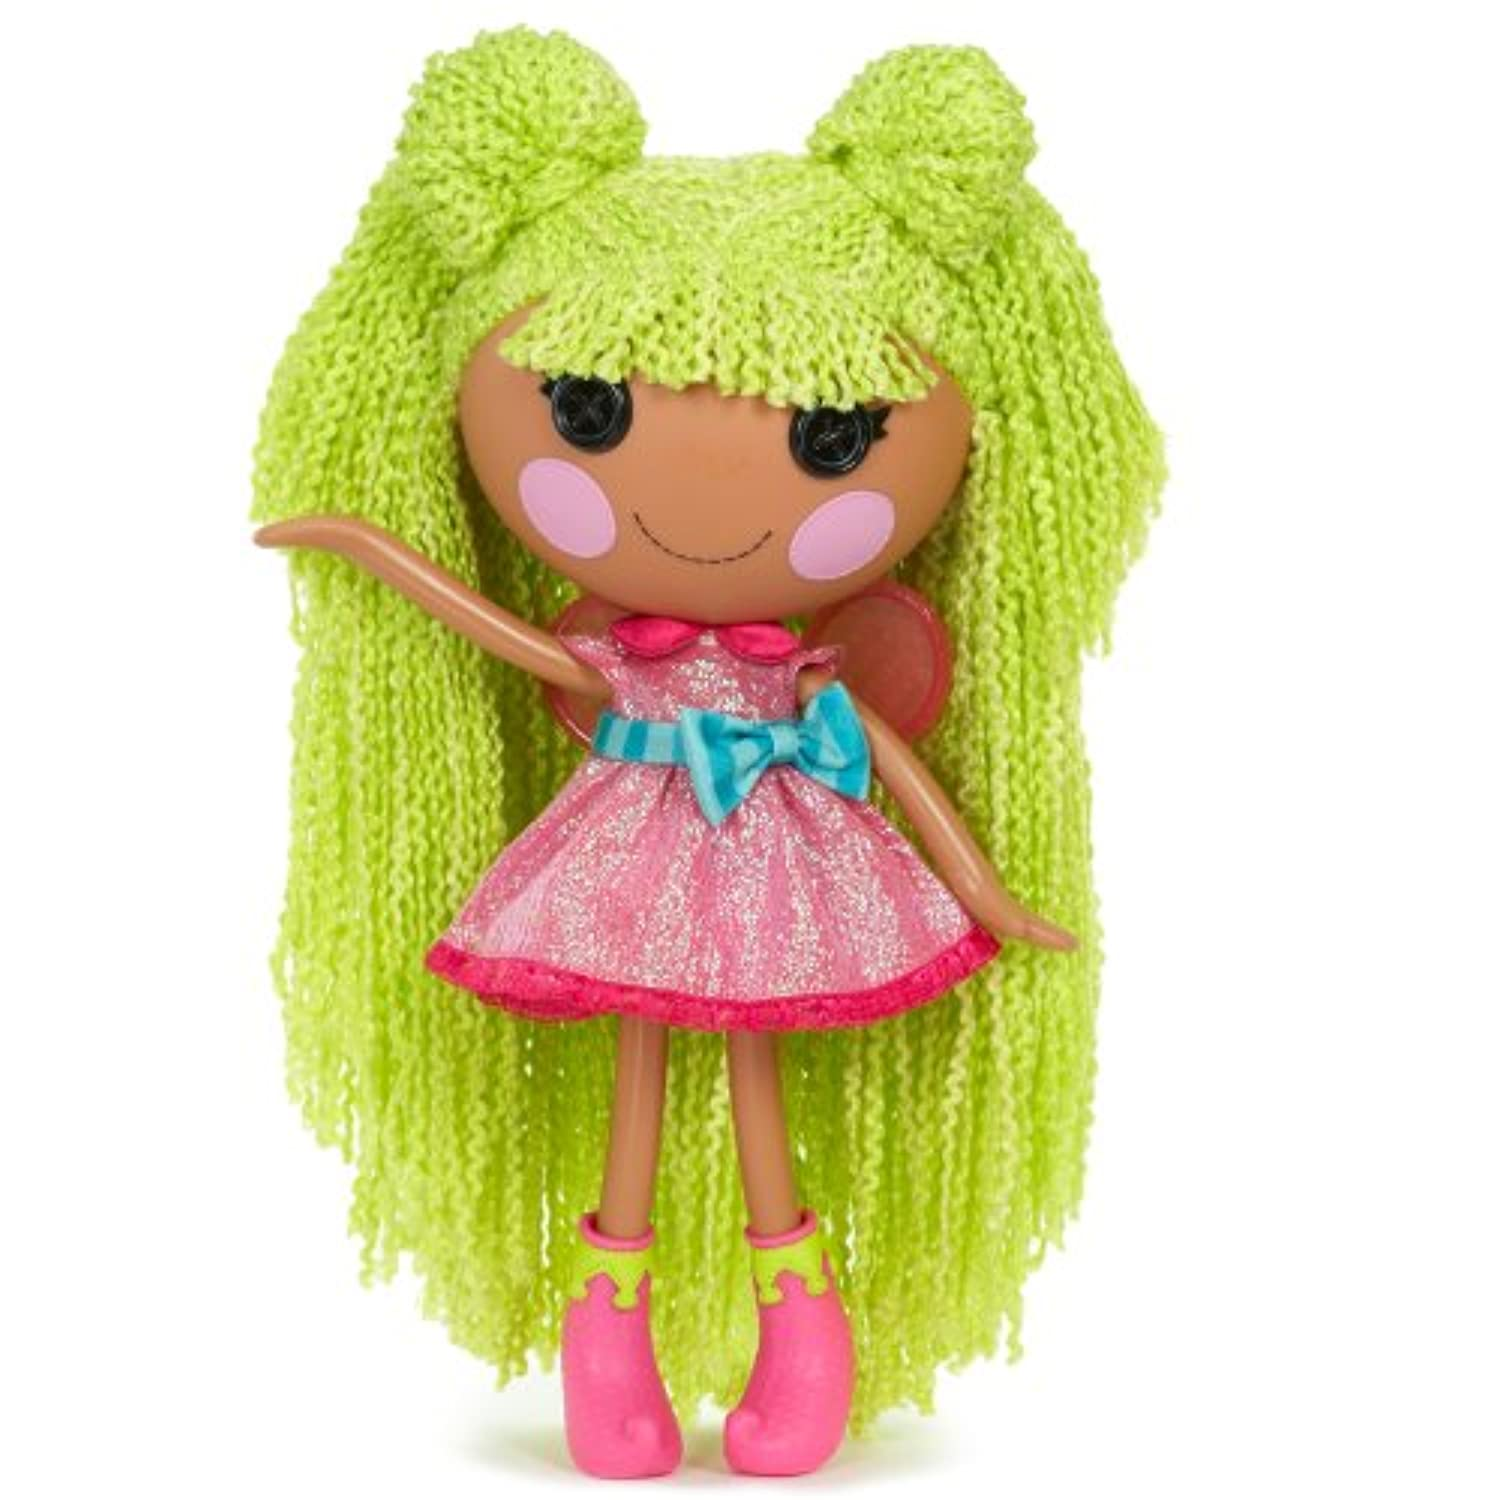 Moxie Girlz Lalaloopsy Pix E Flutters Loopy Hair Doll